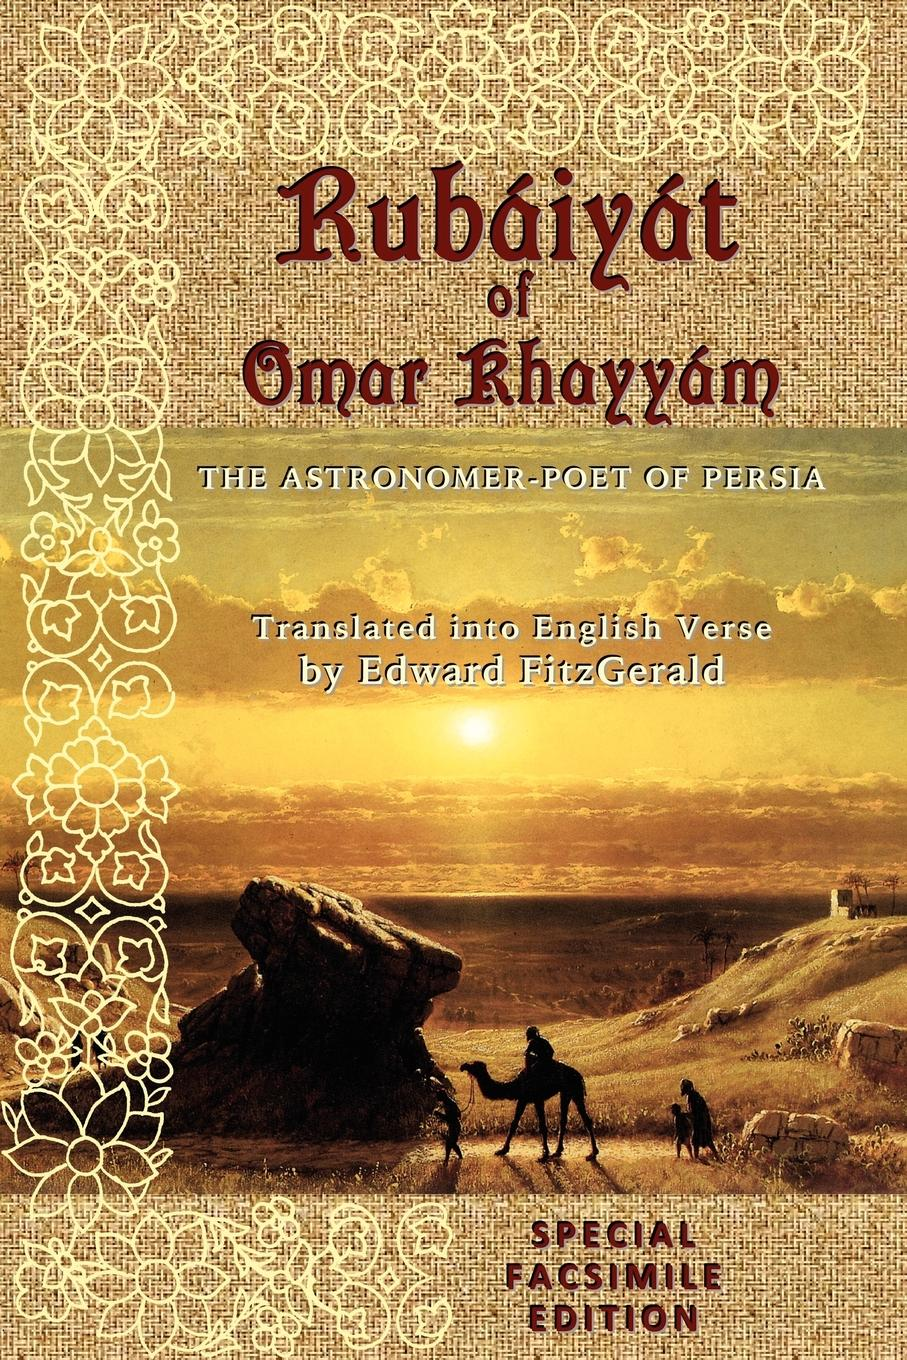 Keith Seddon, Edward FitzGerald Rubaiyat of Omar Khayyam. Special Facsimile Edition coldplay live stories special collector s edition